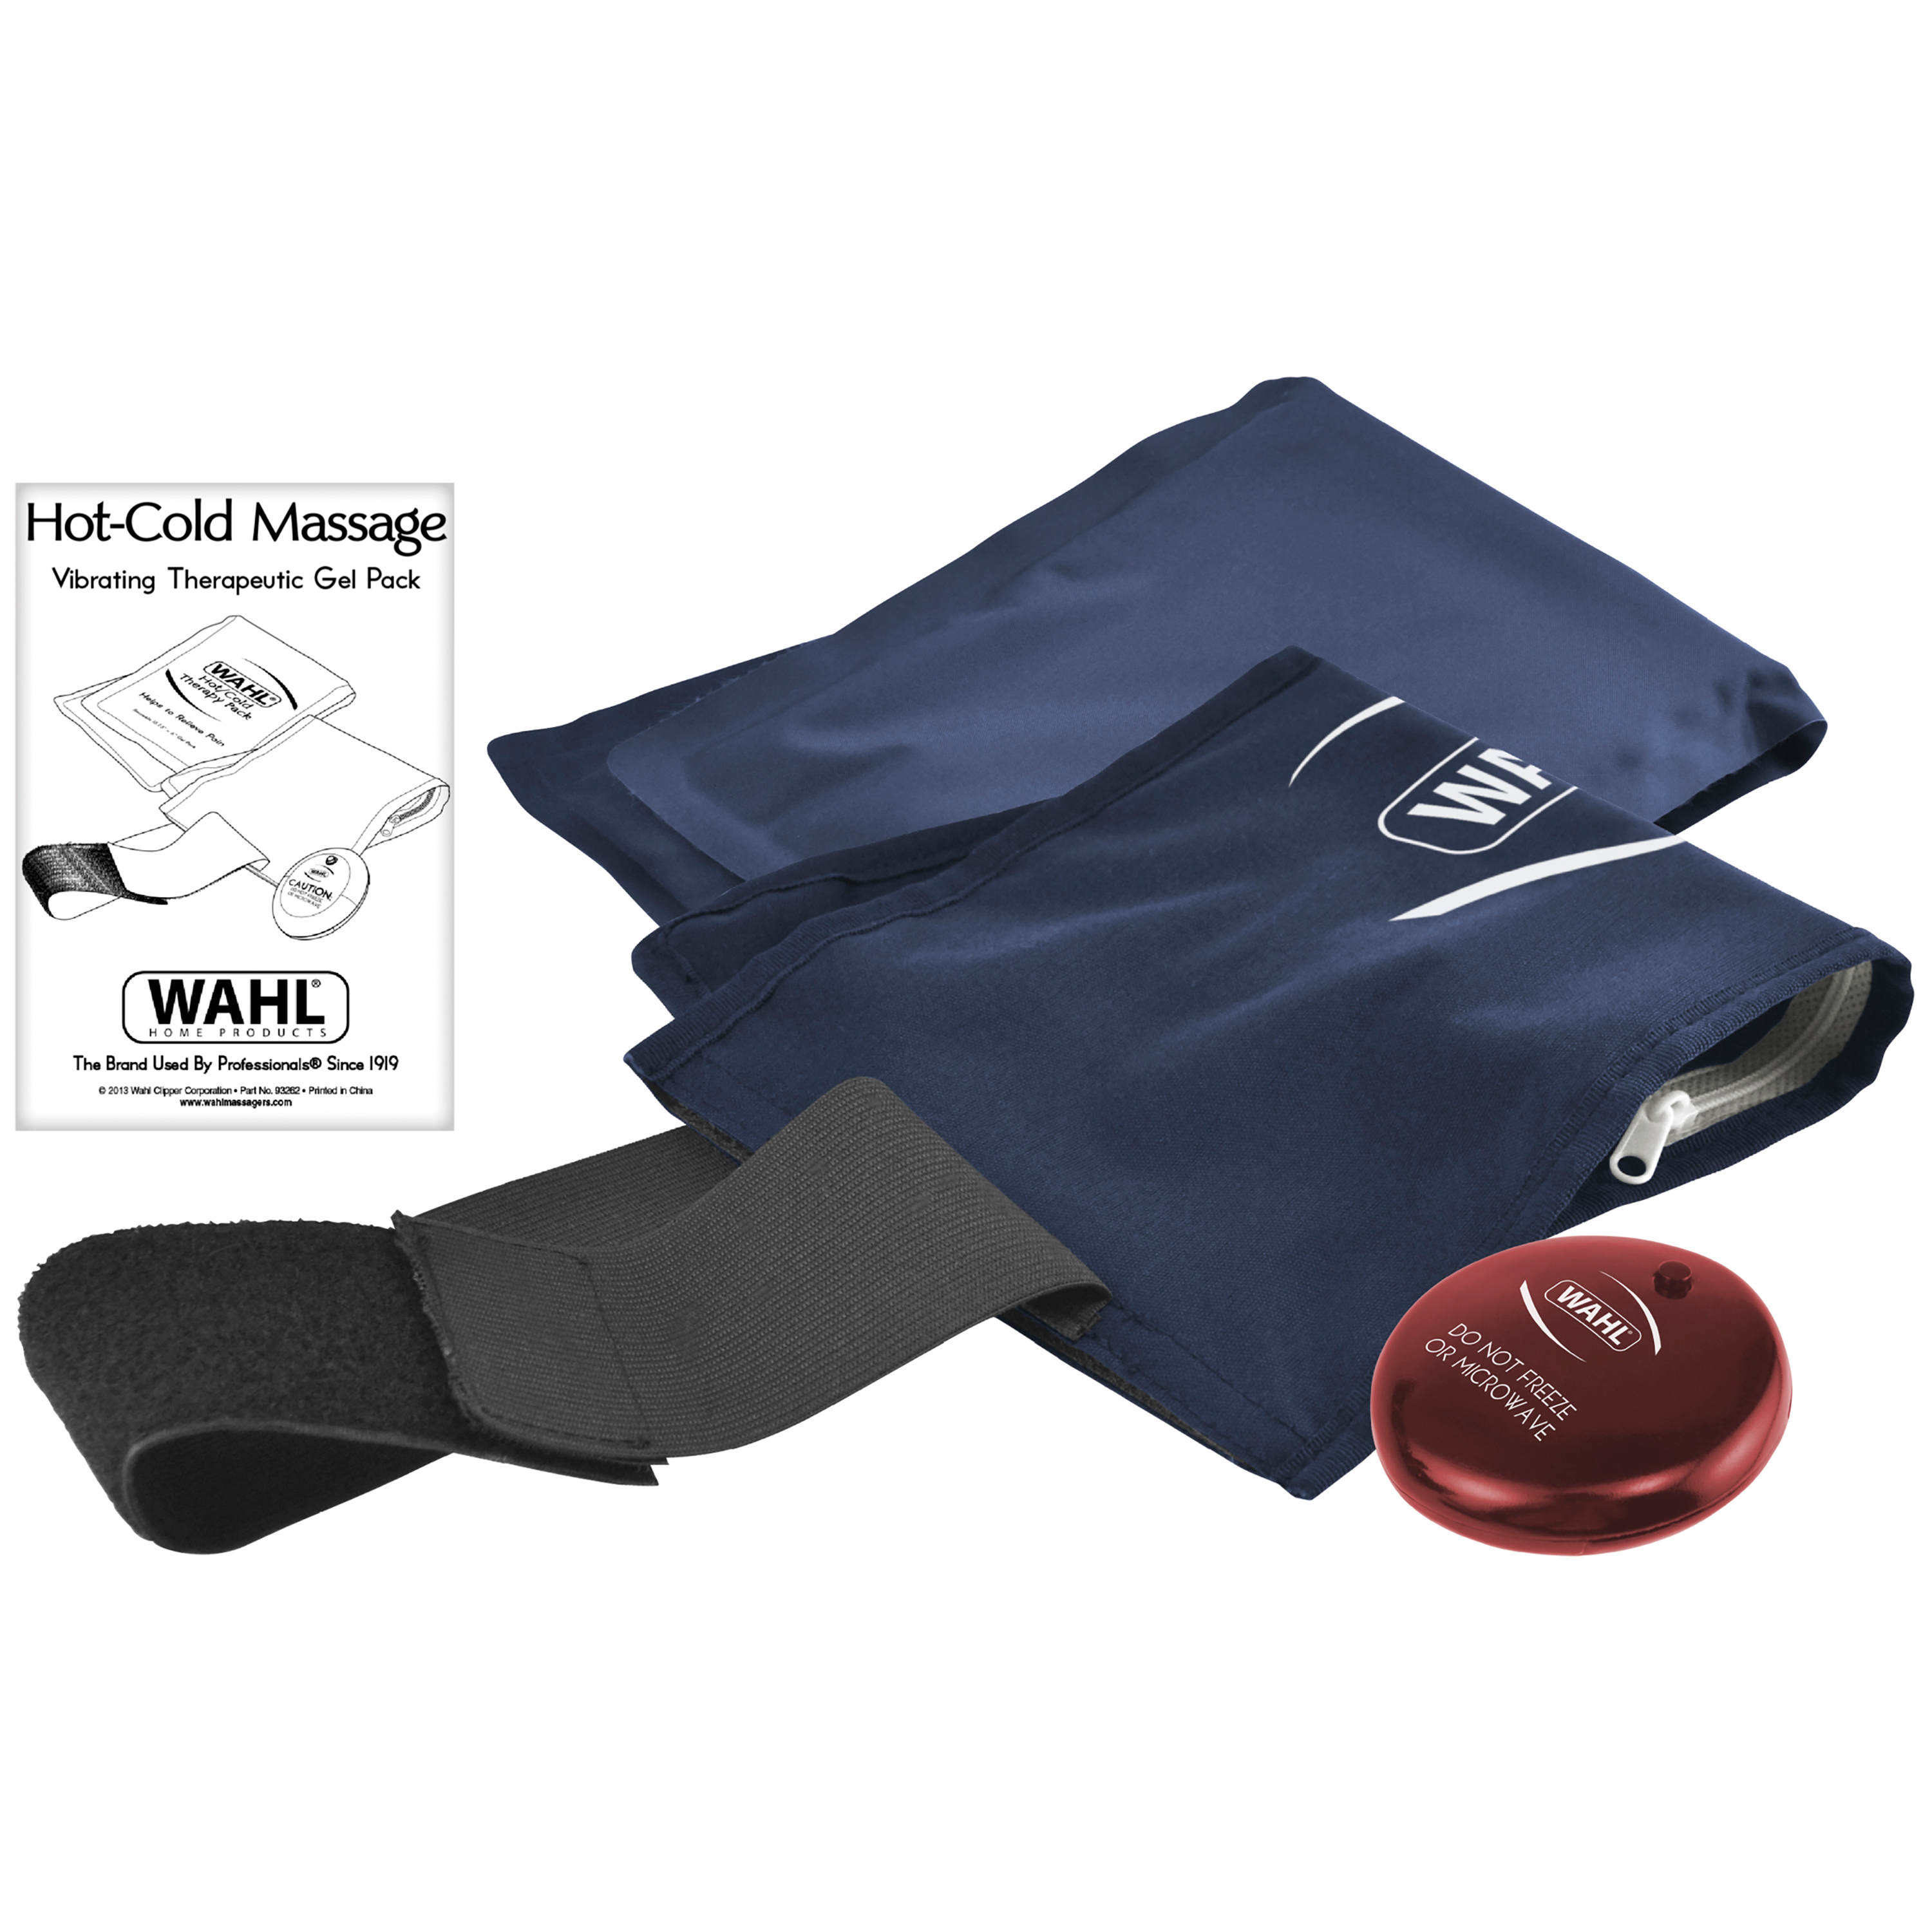 Wahl Hot-Cold Massage Vibrating Therapeutic Gel Pack, 97788-100